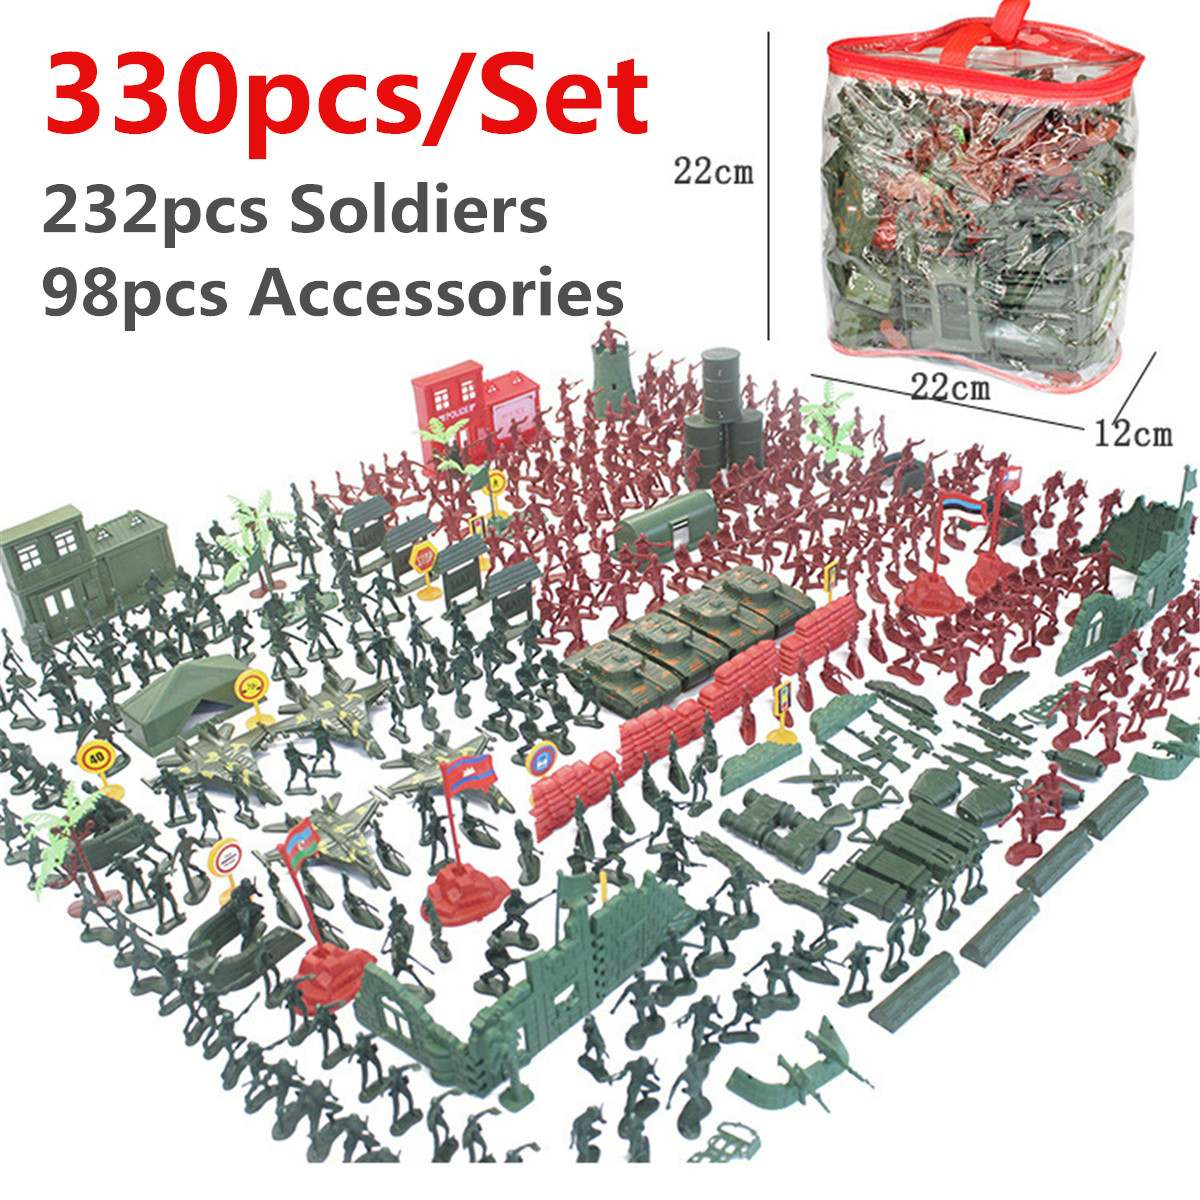 290pcs/330pcs/set Military Plastic Model Playset Kit Toy  Army Men Figures & Accessories Decor Gift Model Toys For Children